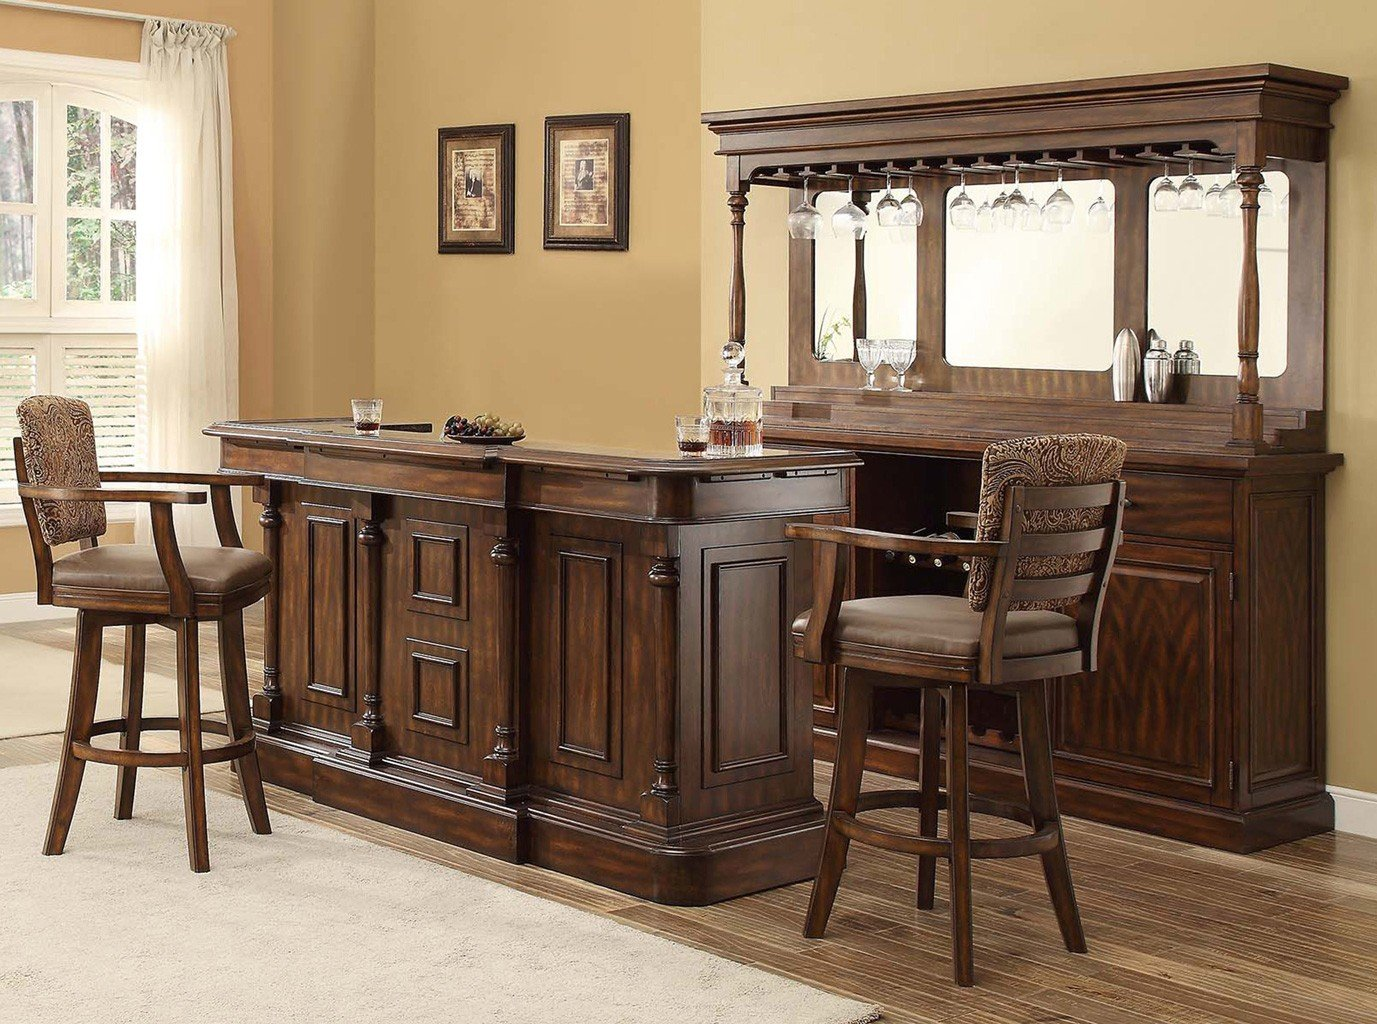 Home Bar Furniture Trafalgar Square Deluxe Home Bar Set